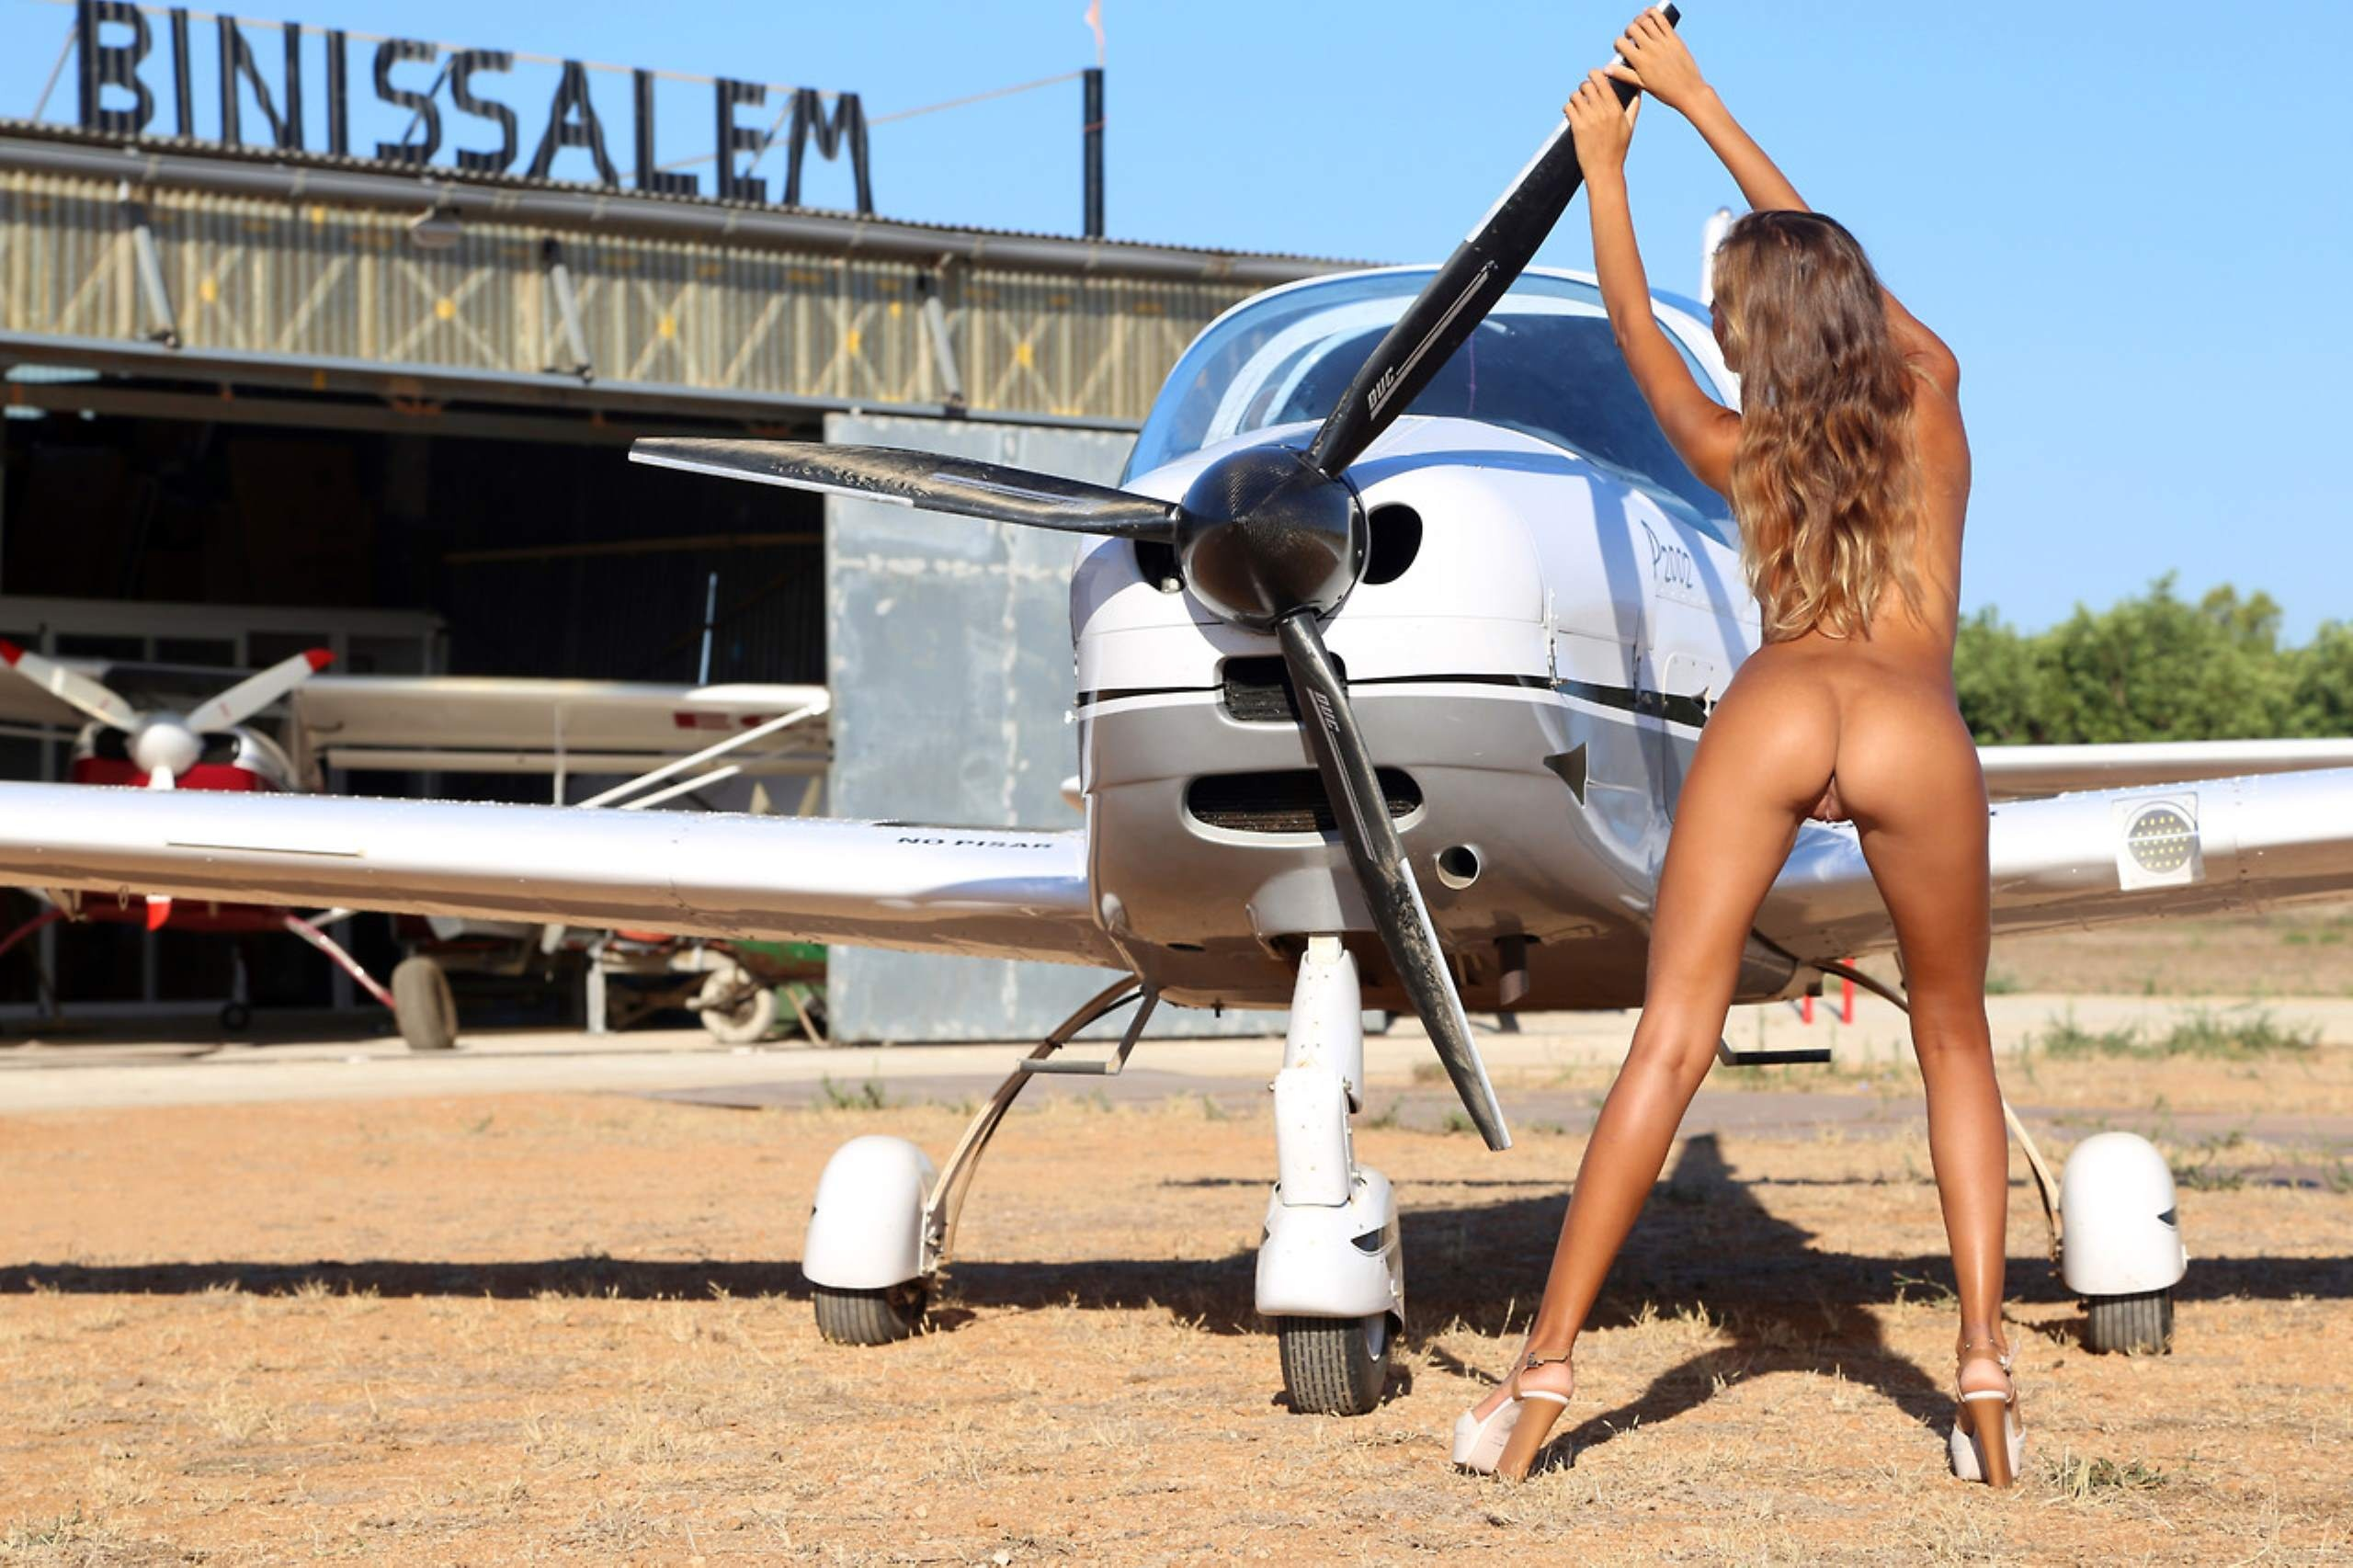 Pity, Naked tan girl in plane bathroom not absolutely